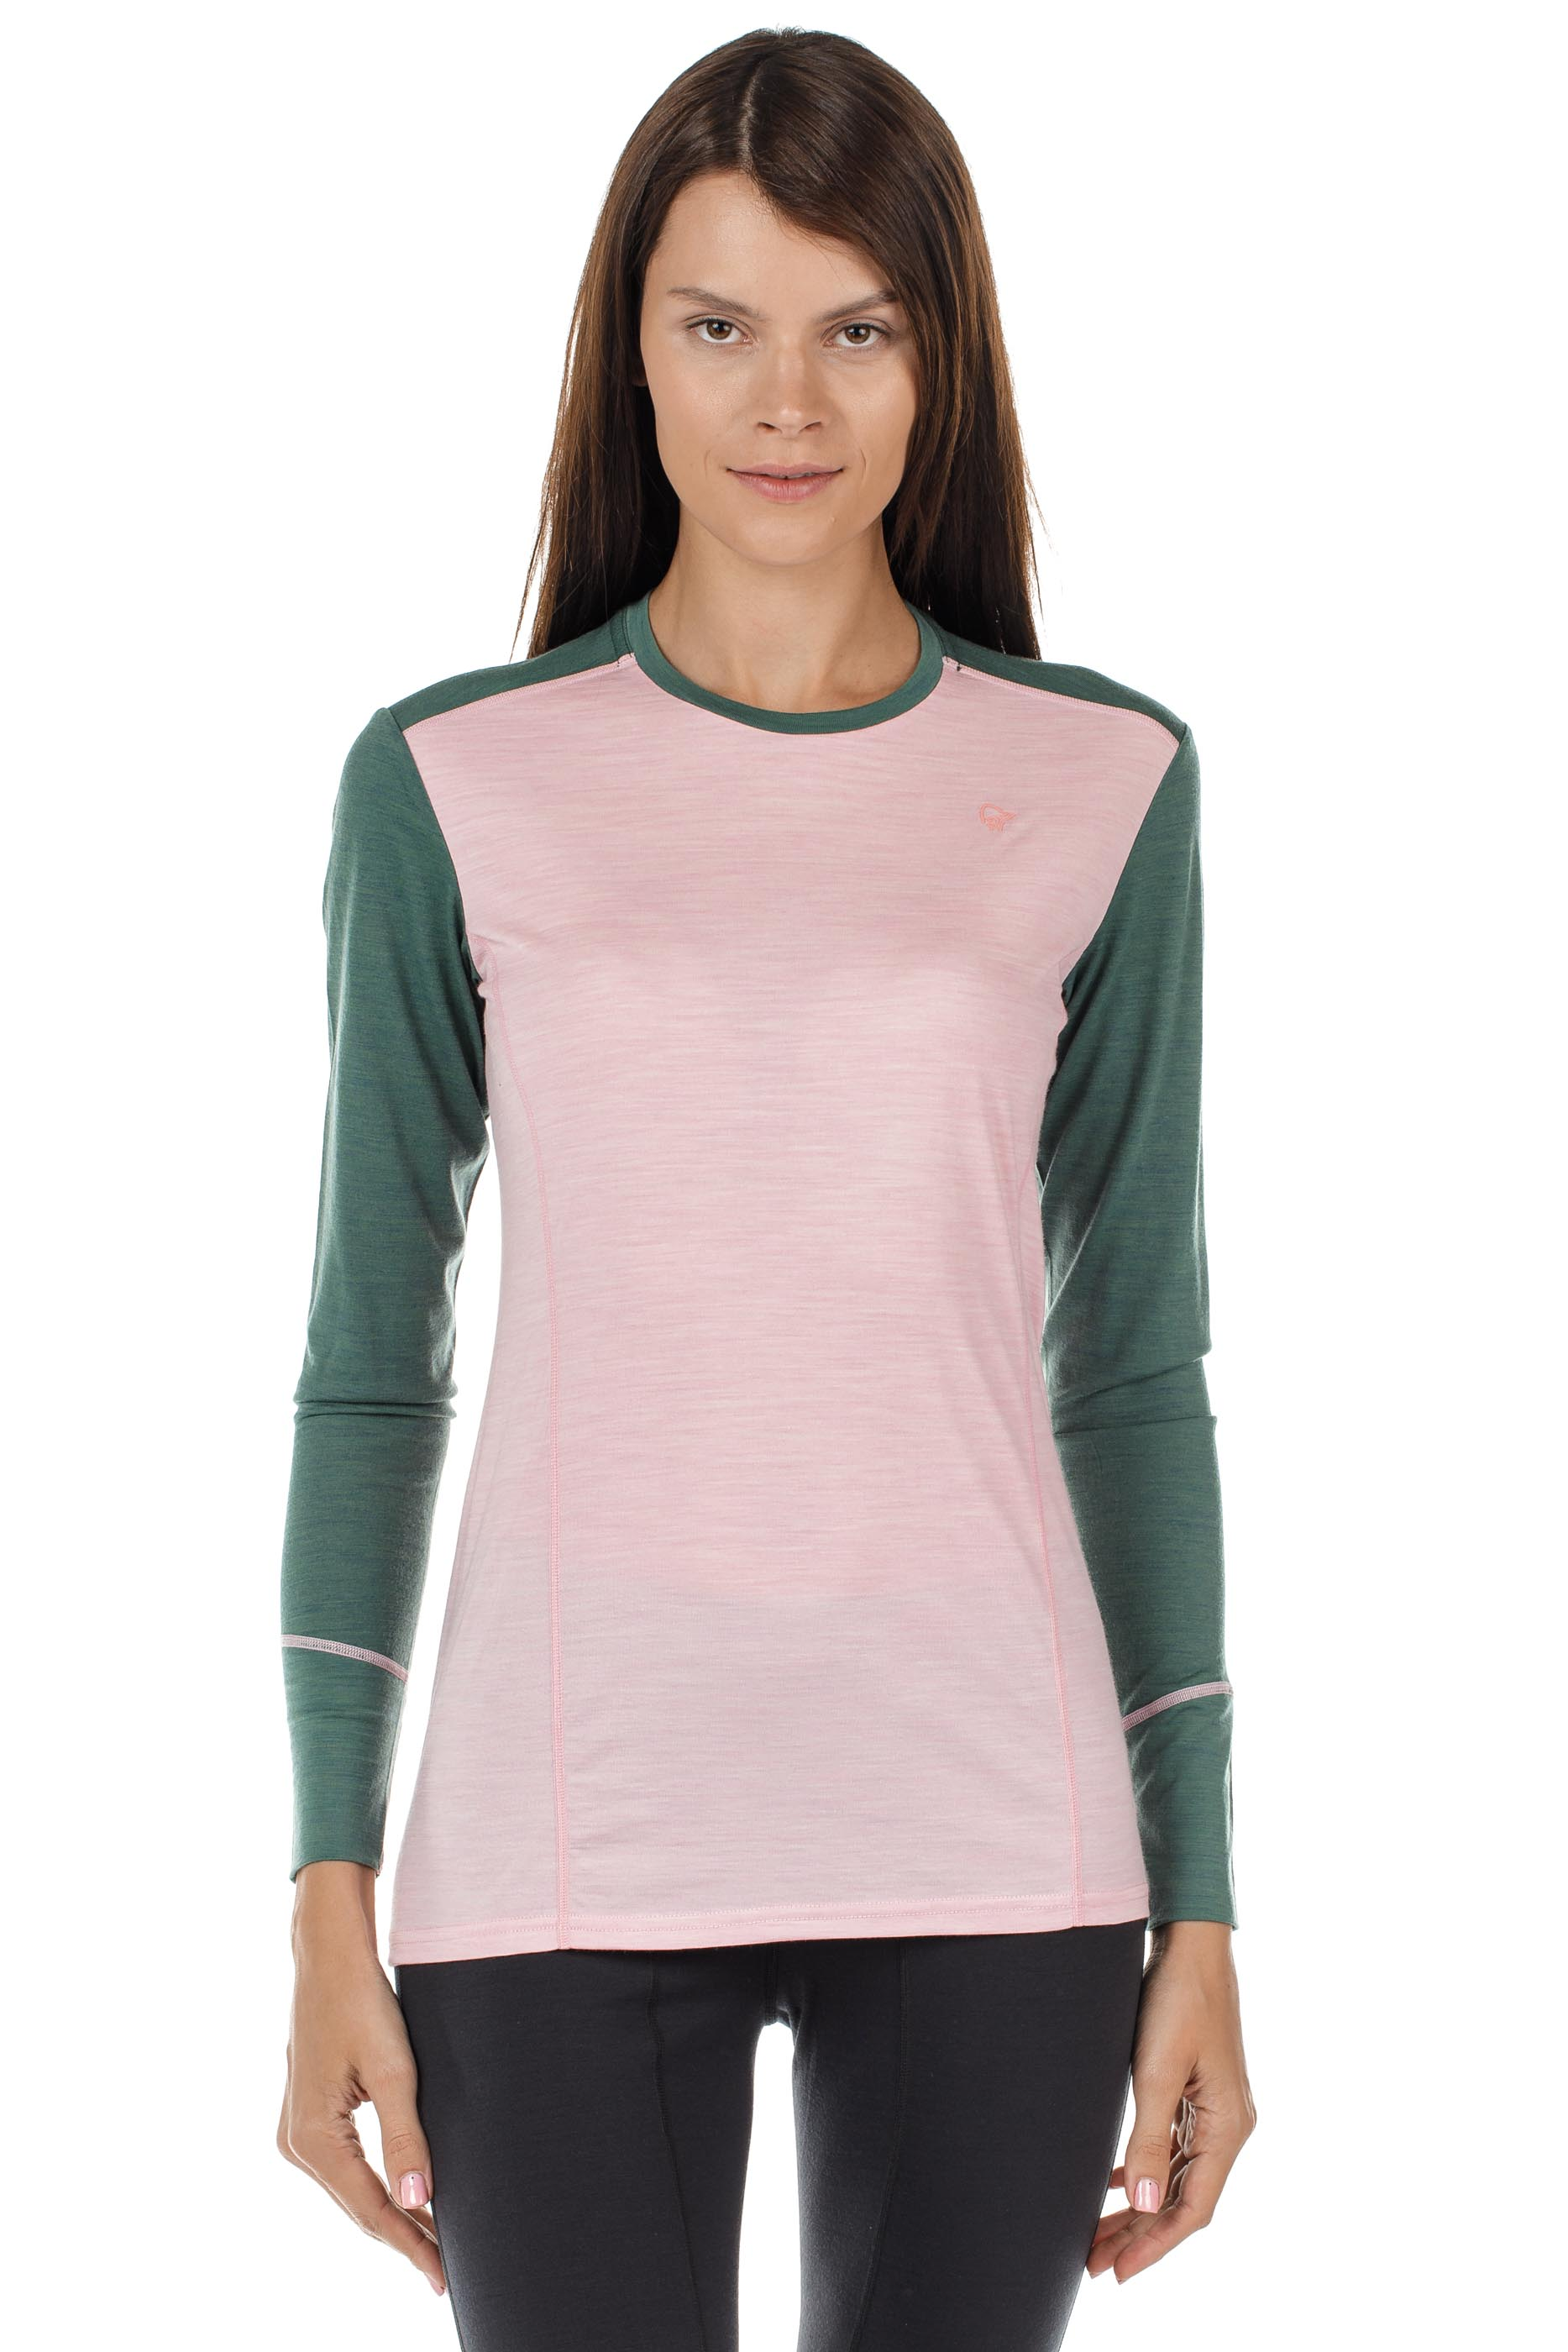 Футболка женская Norrona Wool Round Neck Candy Pink - Фото 2 большая